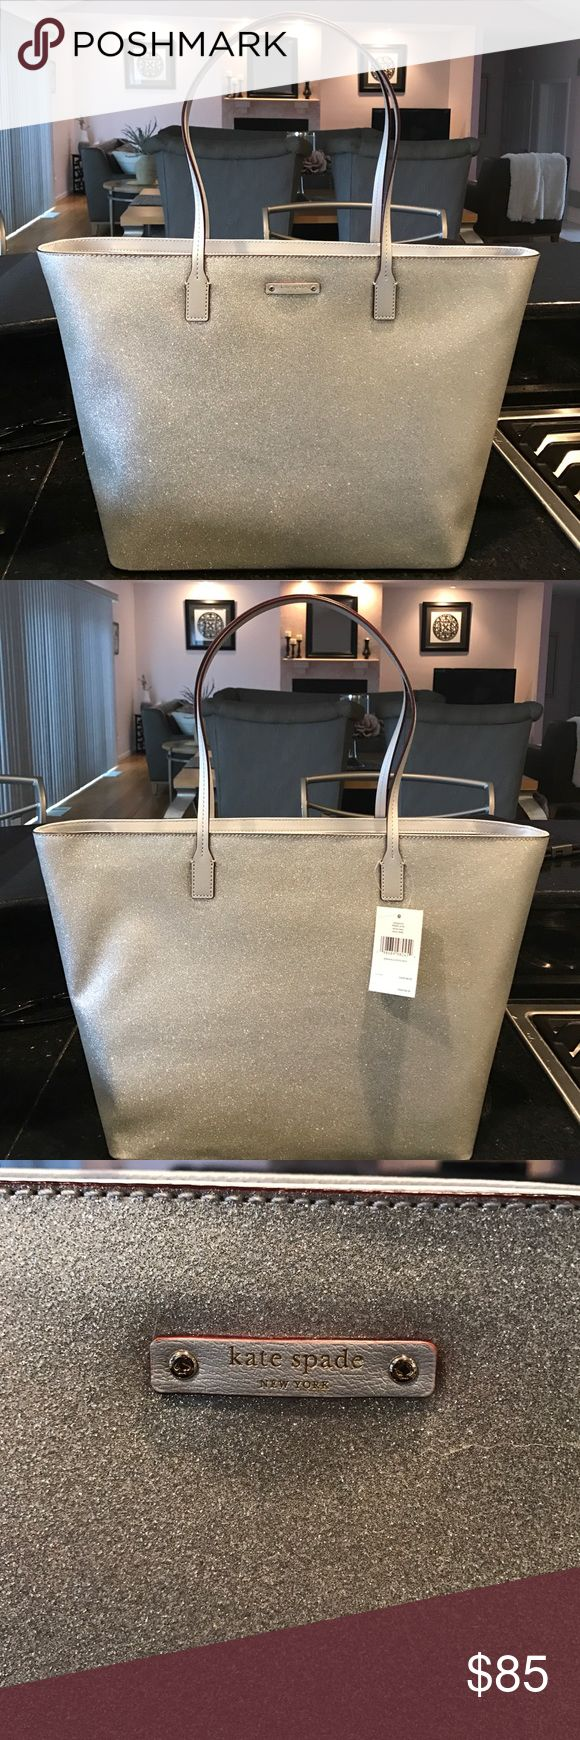 Kate Spade Tote Bag It is a glitter-like silver tote bag with a zipper across the top. There is also two pockets and a zipper pocket inside the bag. This bag is brand new and never used kate spade Bags Totes